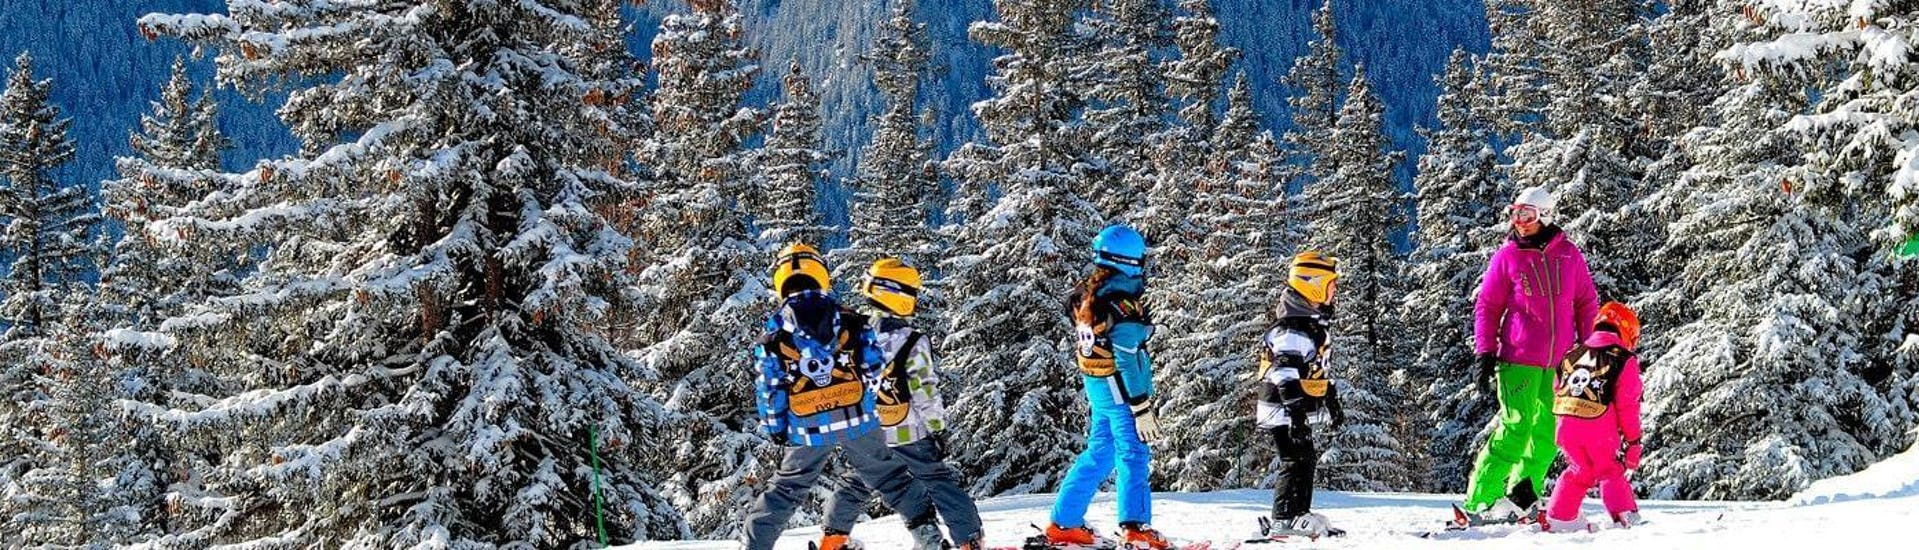 kids-ski-lessons-6-18-years-morning-all-levels-evo-2-val-d-isere-hero